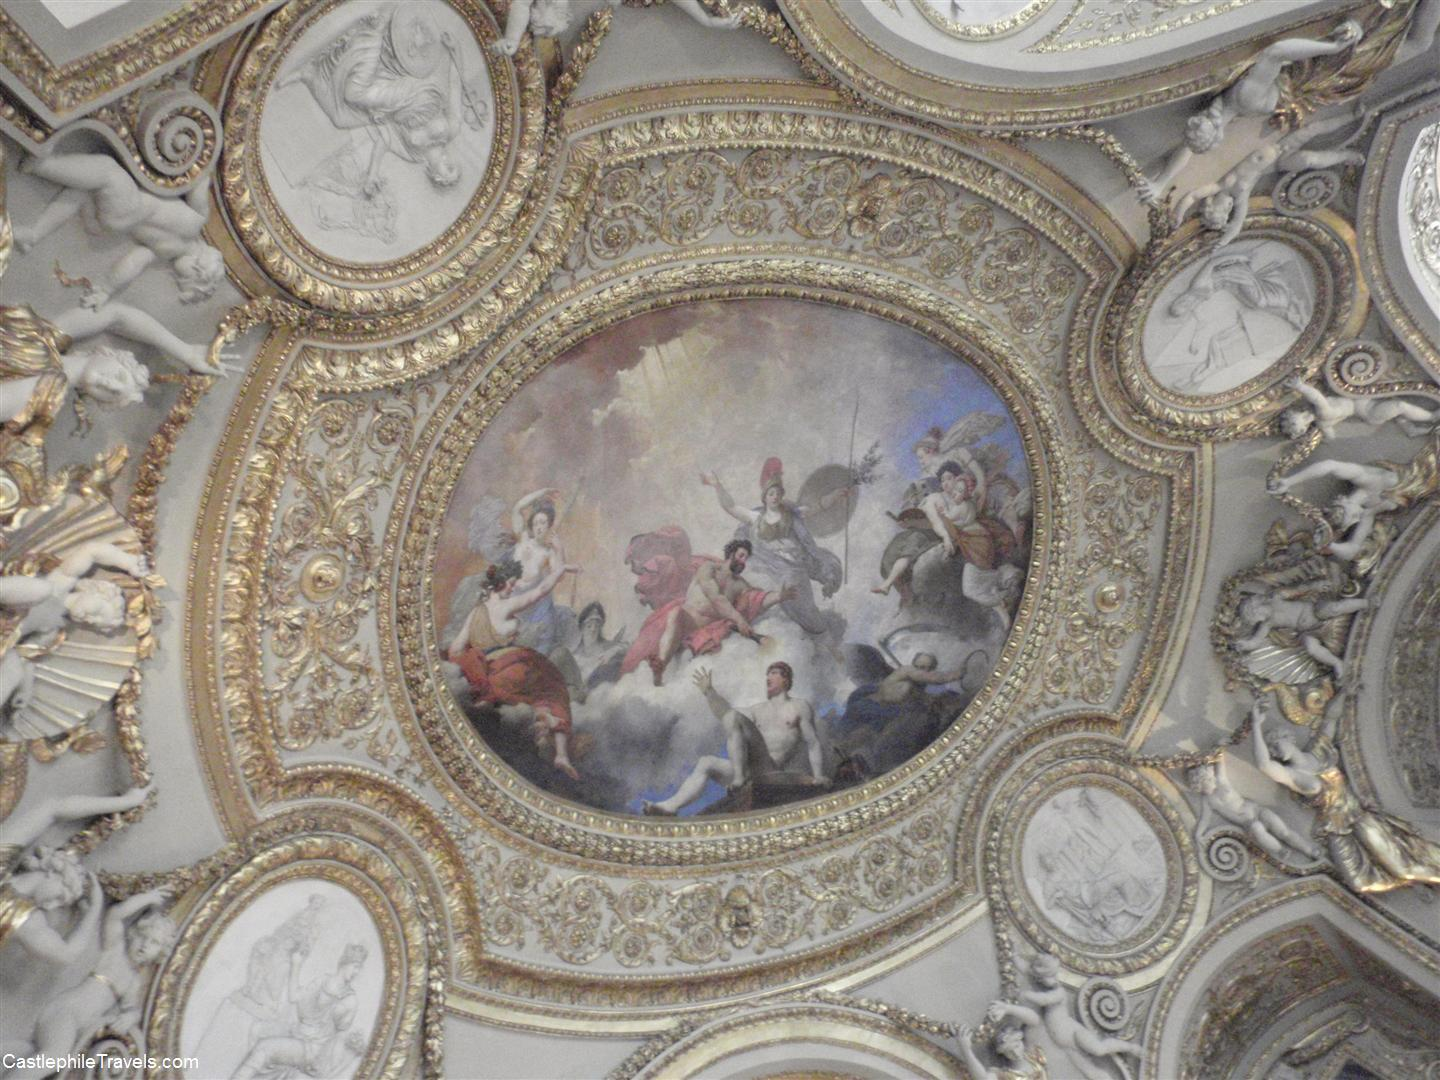 One of the painted ceilings of the Louvre